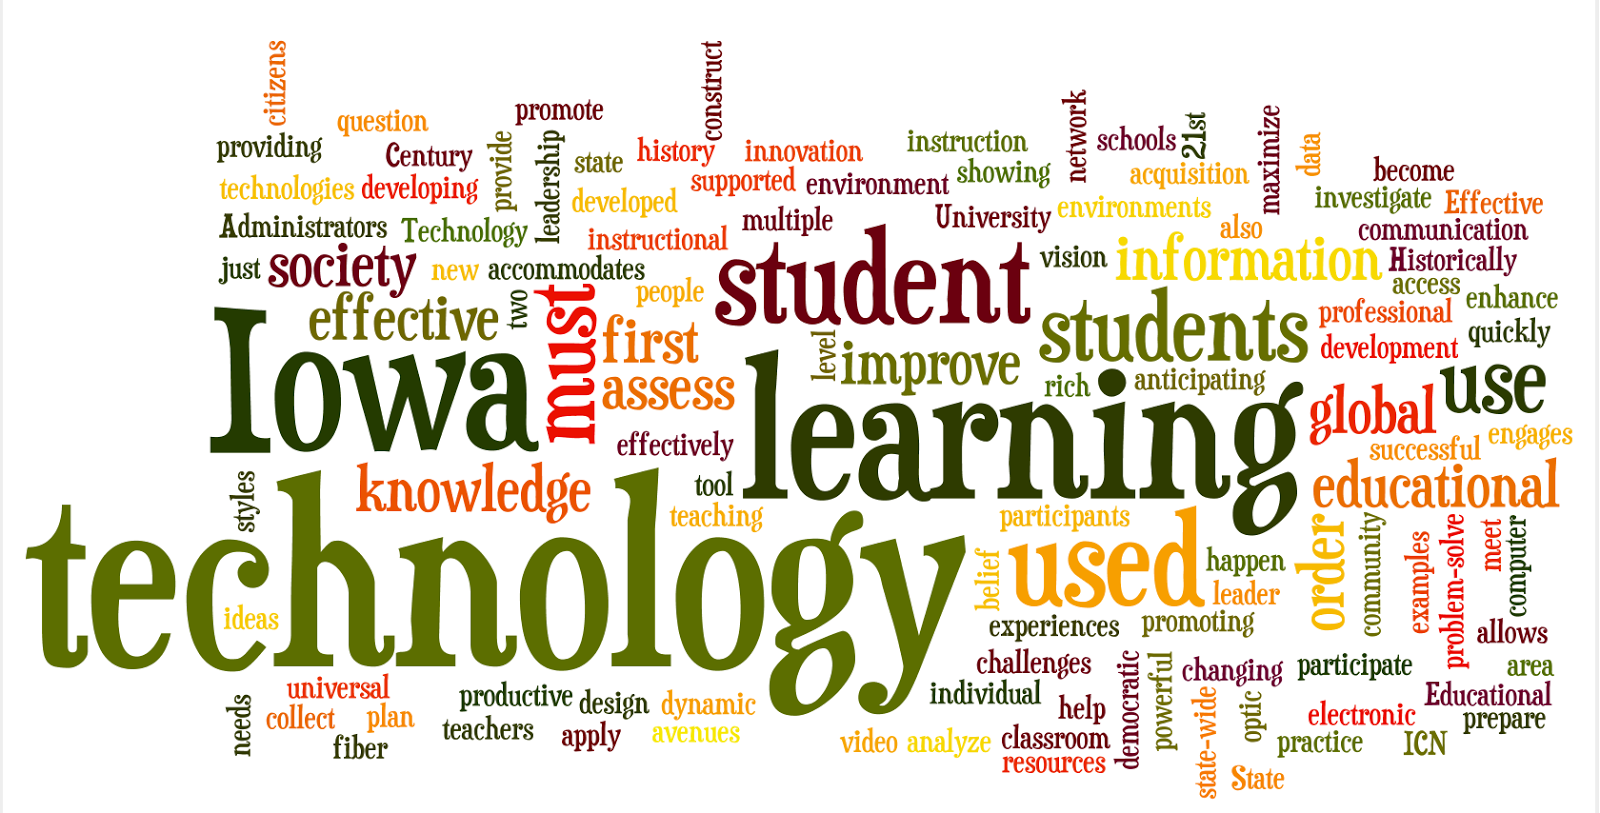 Iowa department of education educational technology plan 2009 2013